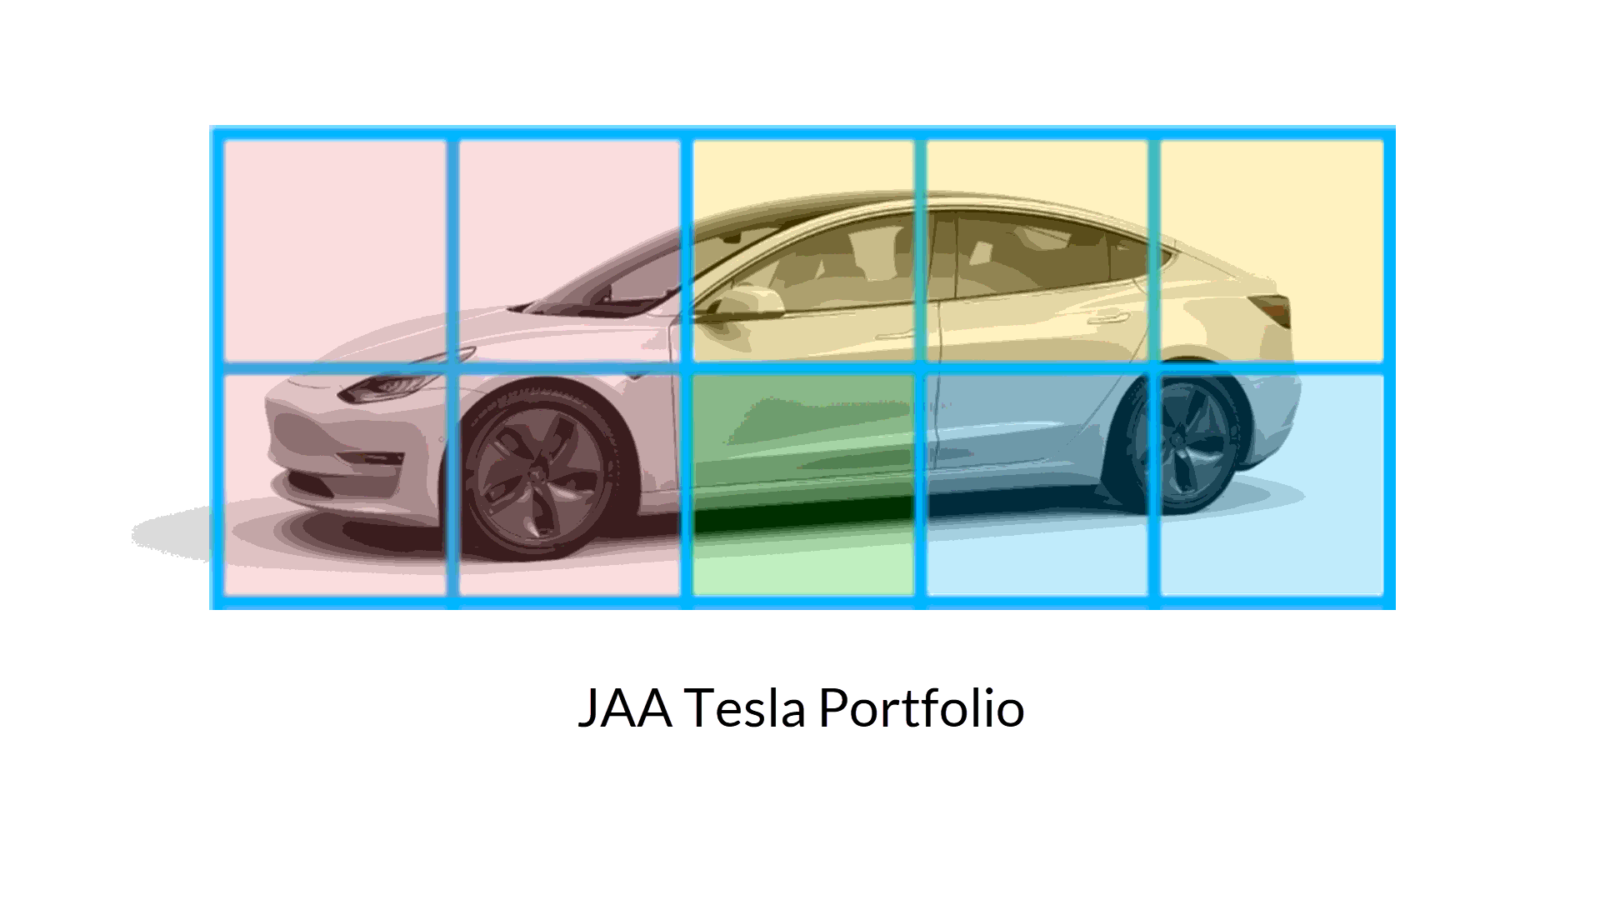 JAA Tesla shared-ownership vehicles